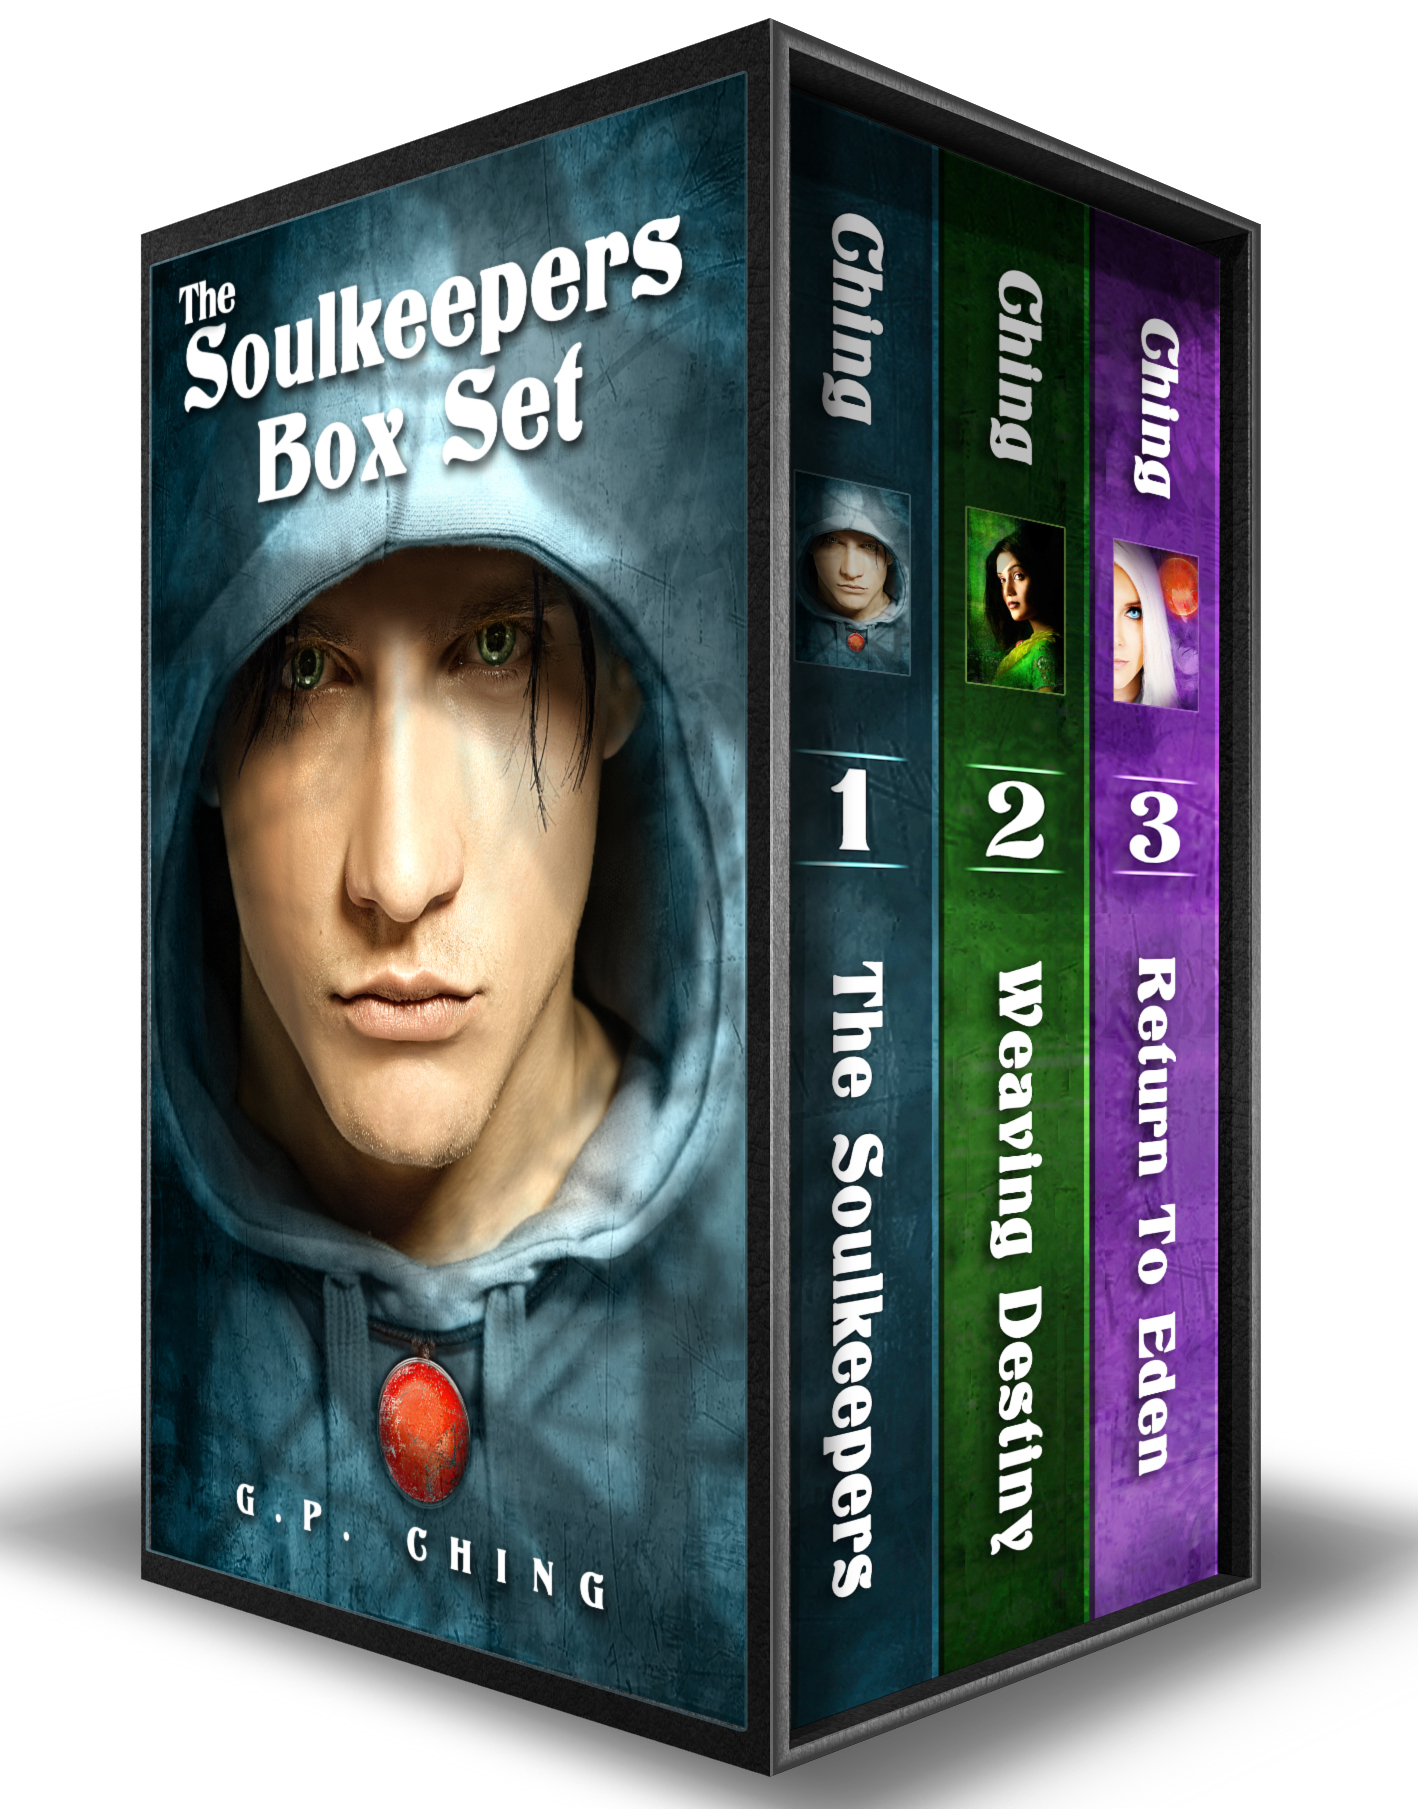 Box Set: The Soulkeepers (Books 1-3)